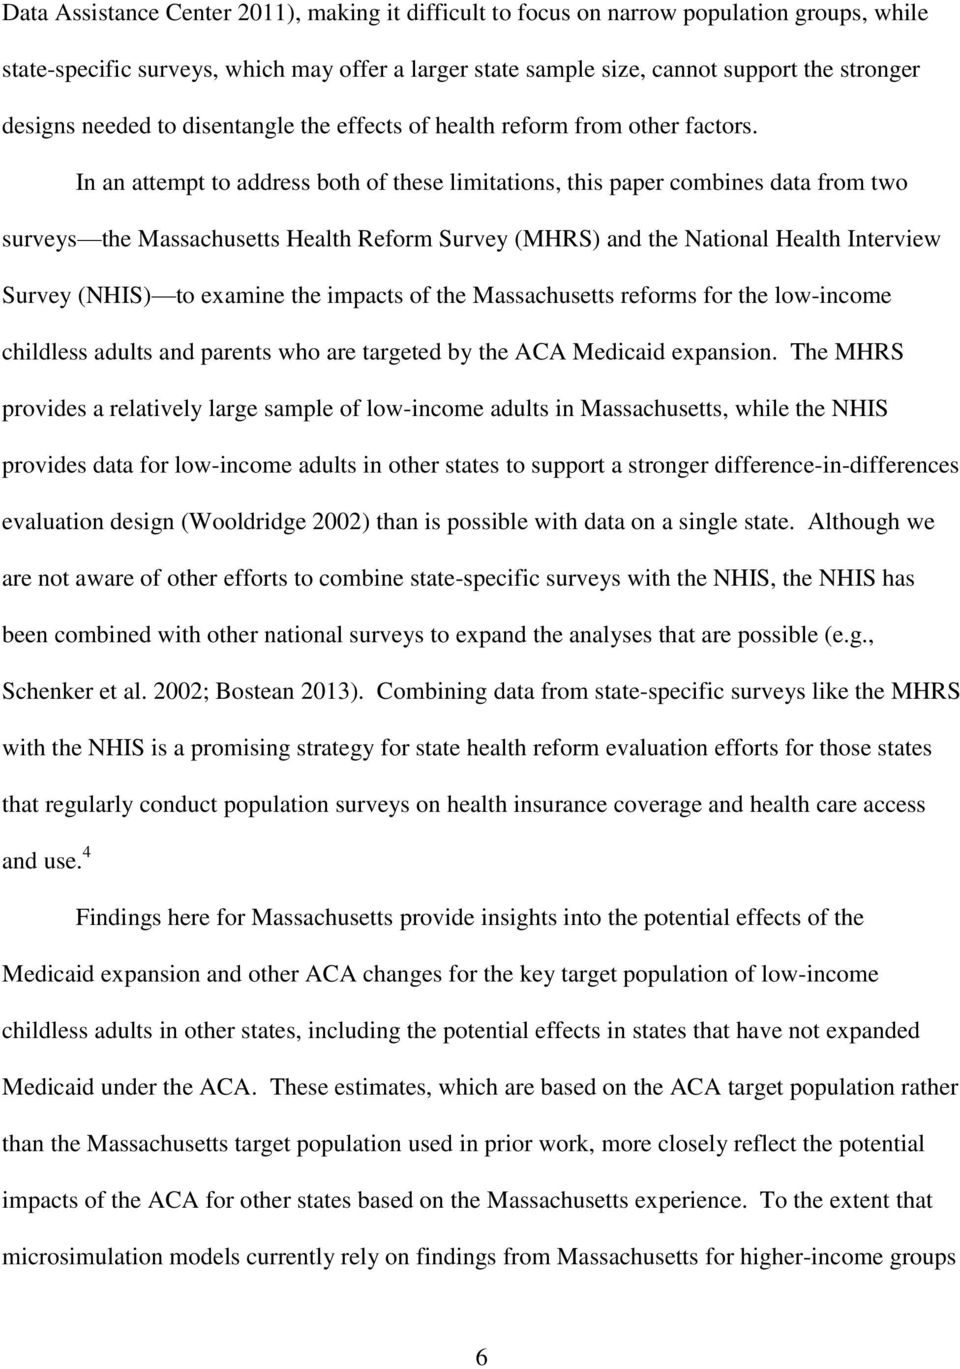 In an attempt to address both of these limitations, this paper combines data from two surveys the Massachusetts Health Reform Survey (MHRS) and the National Health Interview Survey (NHIS) to examine